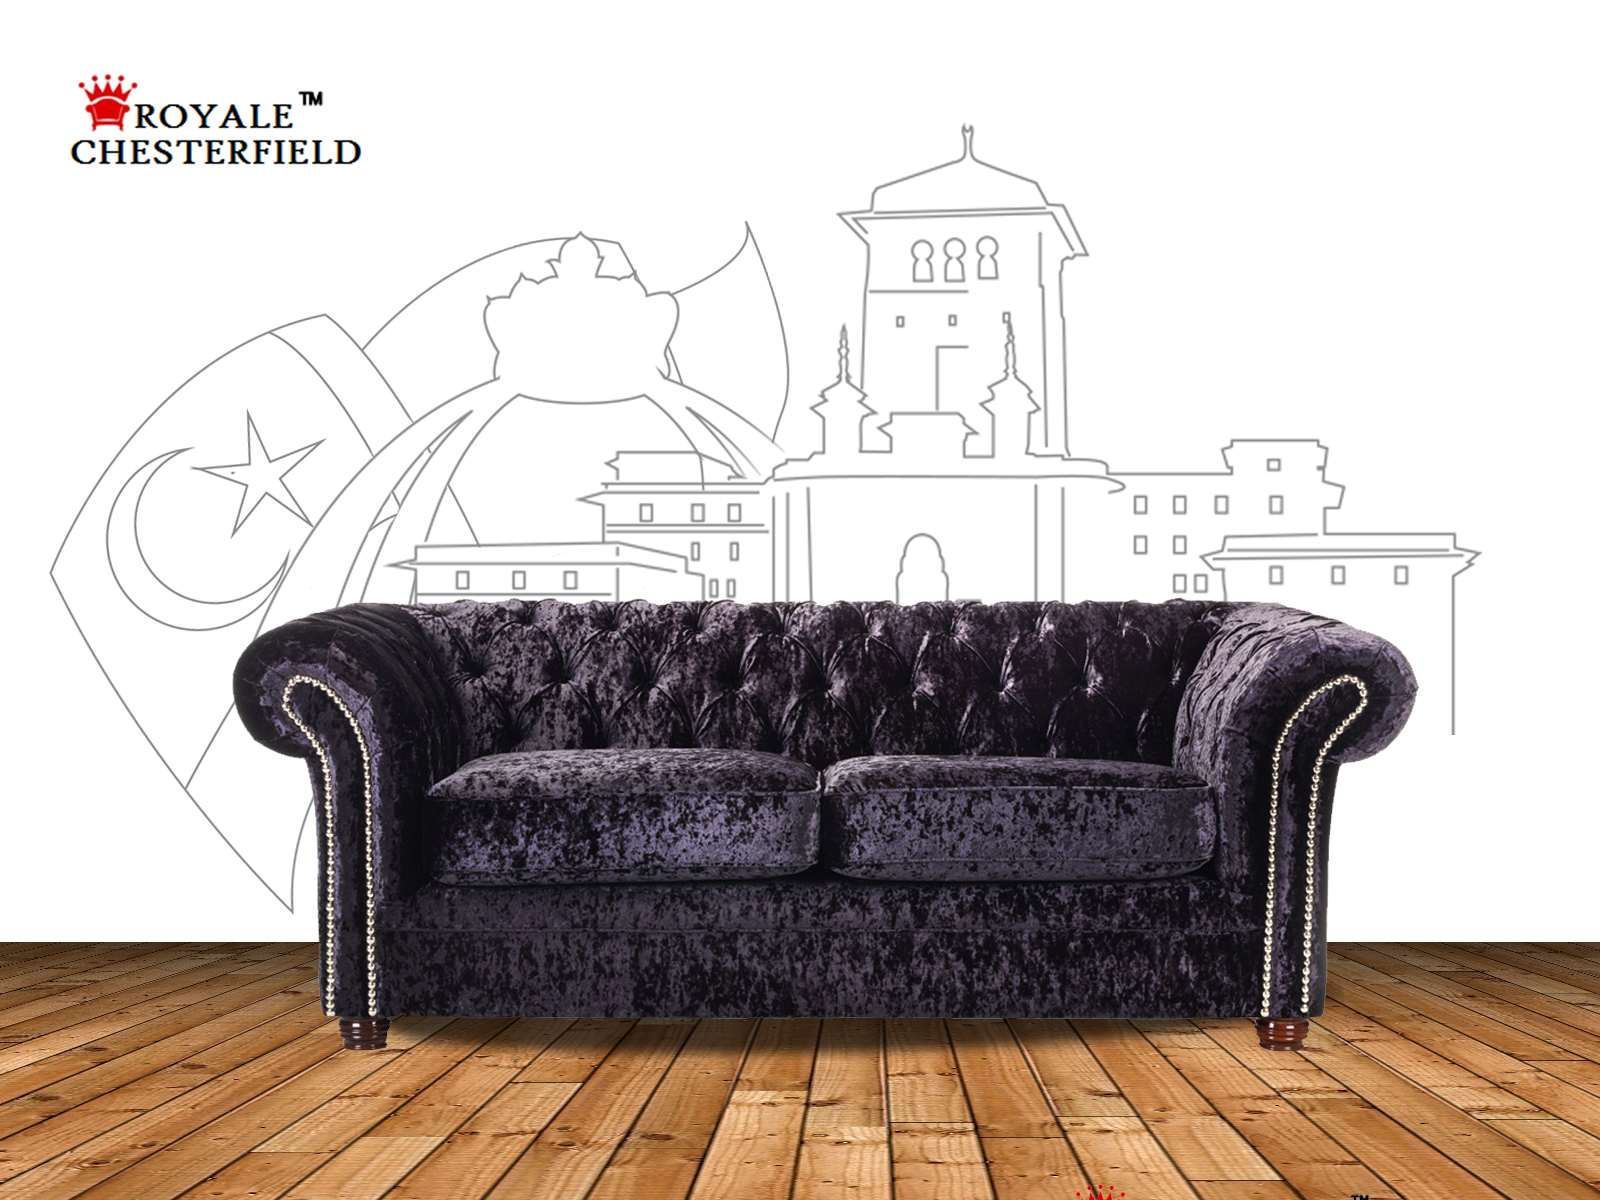 ROYALE CHESTERFIELD